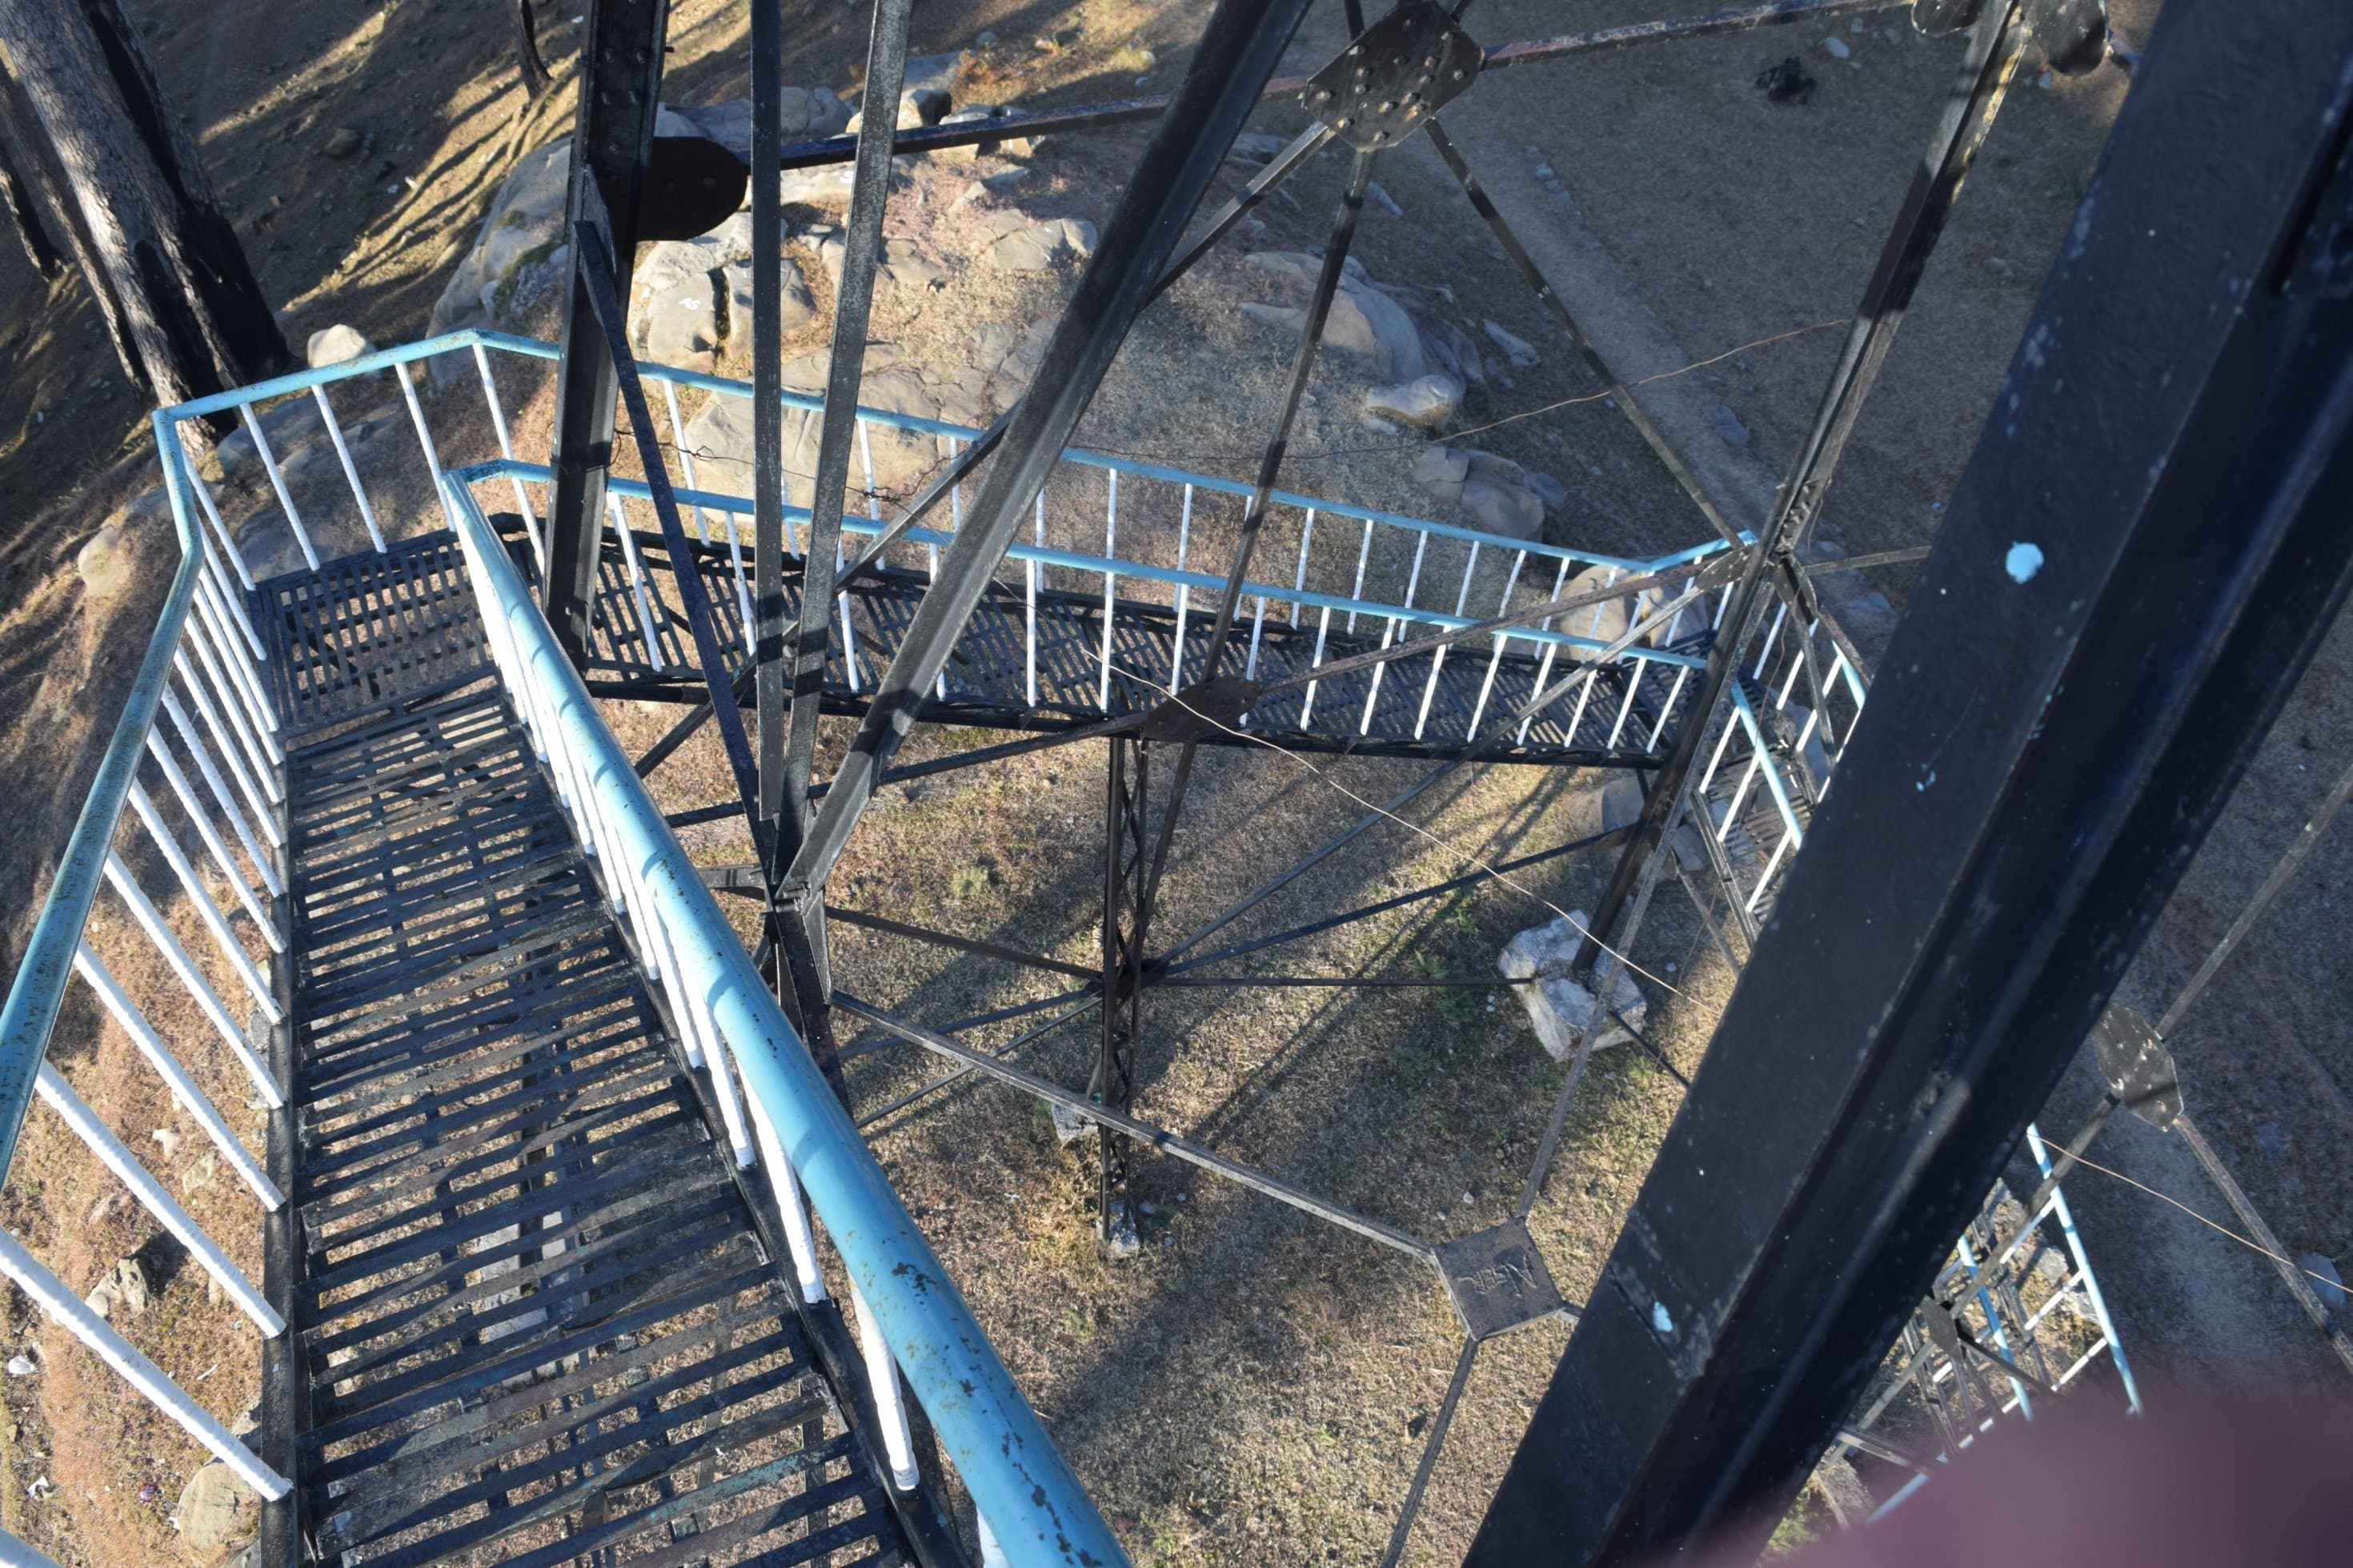 The stairs going up to the fire tower.